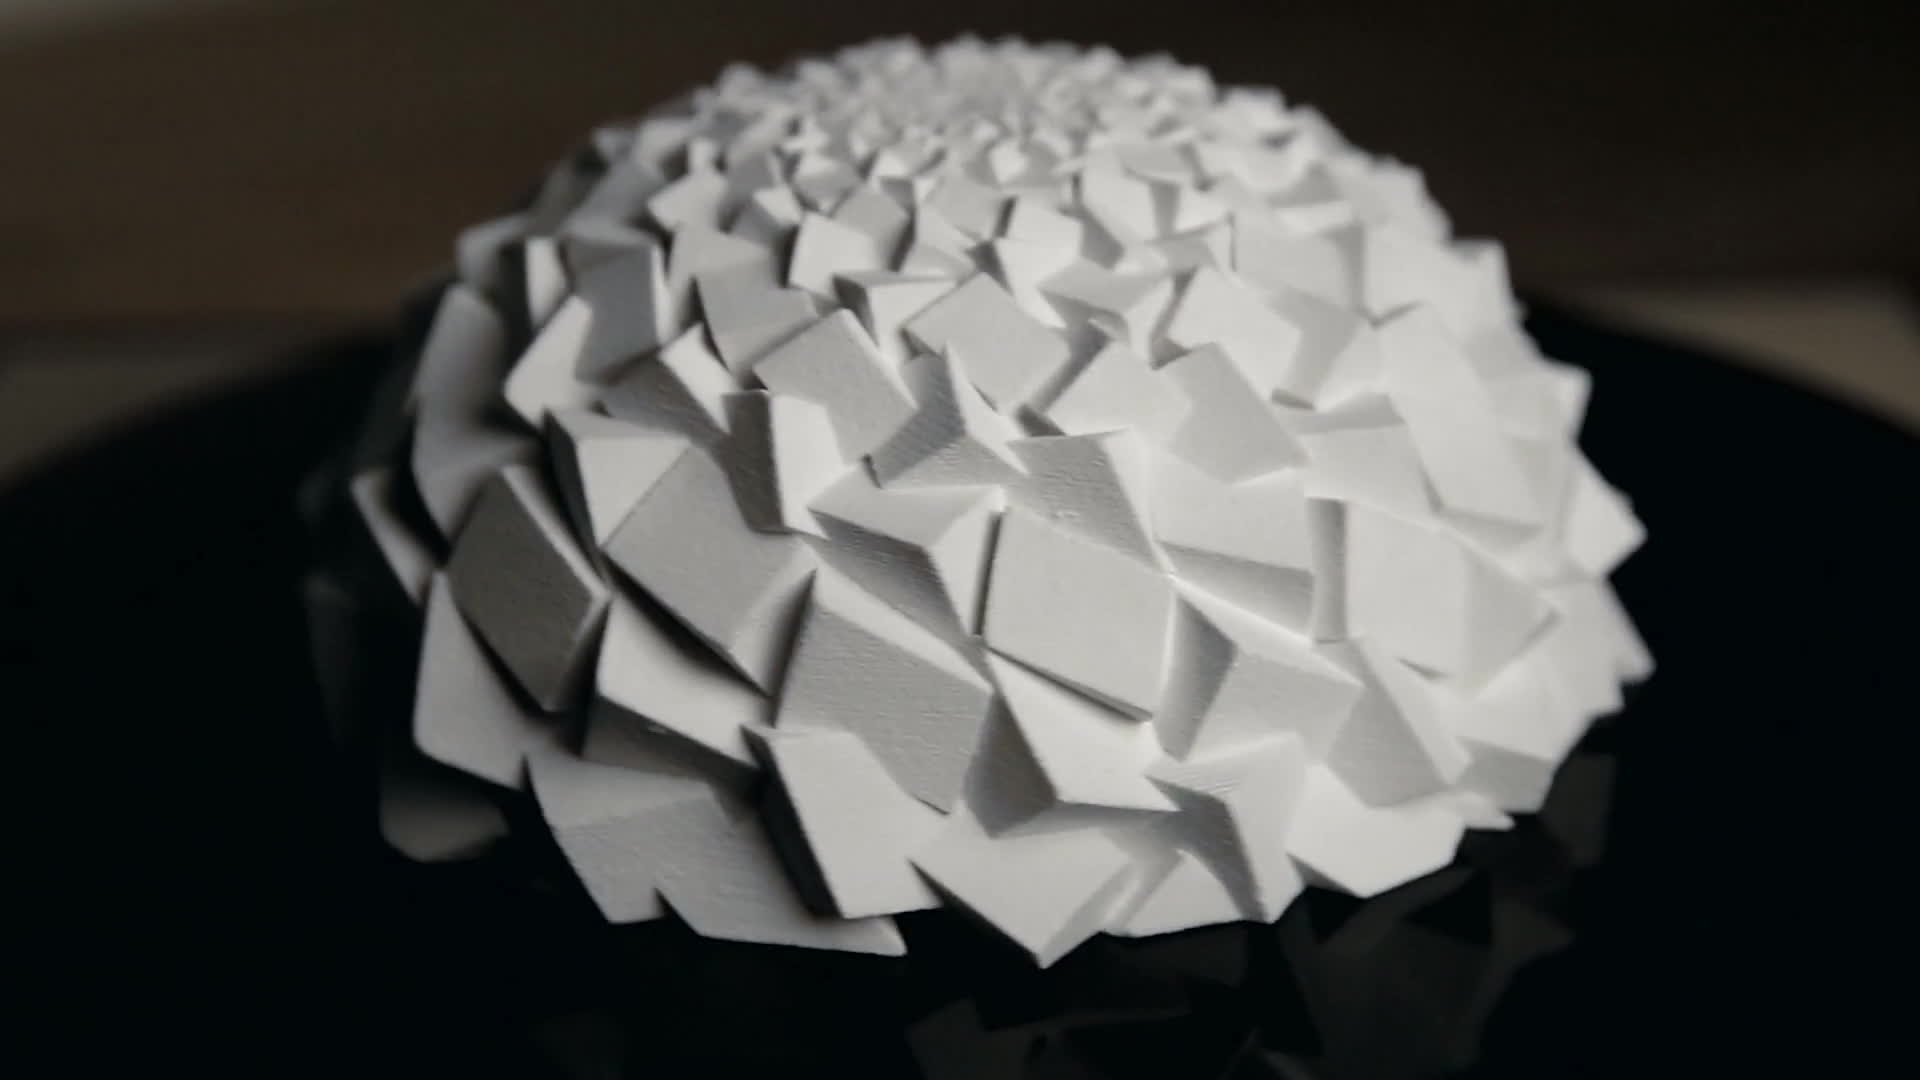 Currentlytripping, gifs, BLOOMS: Strobe Animated Sculptures Invented by John Edmark GIFs